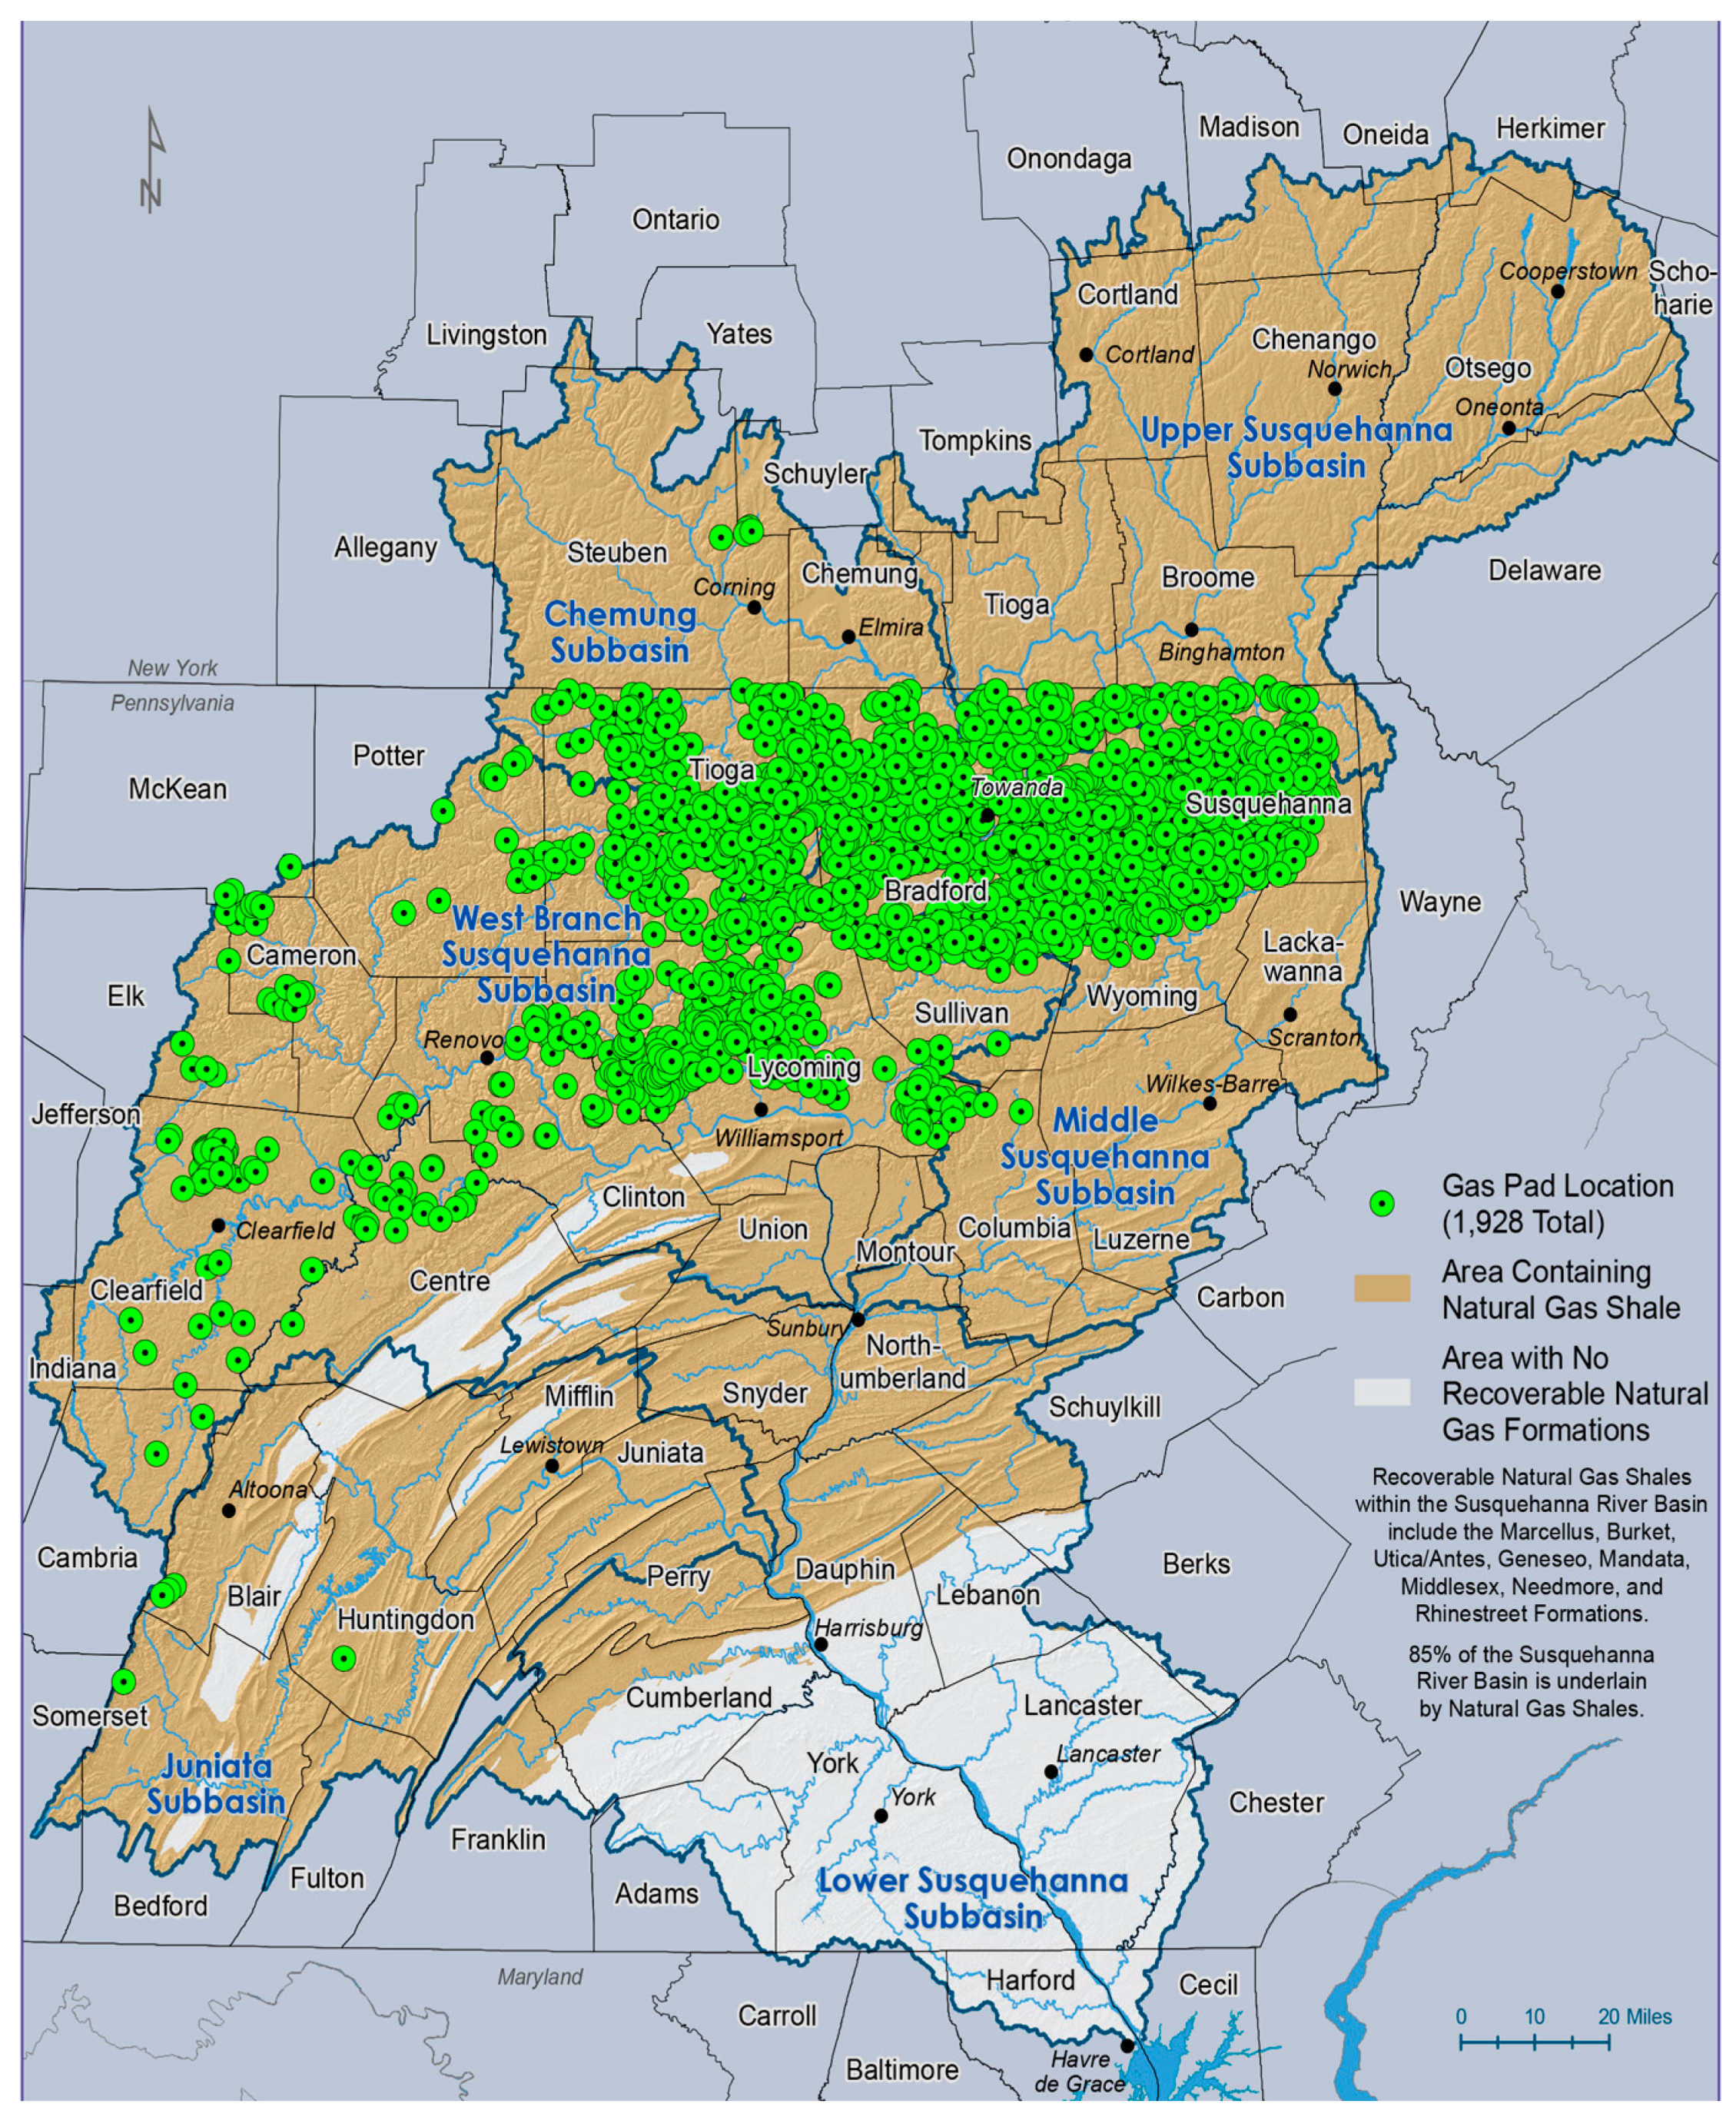 Sustainability Free FullText Marcellus Shale Fracking And - Marcellus shale map